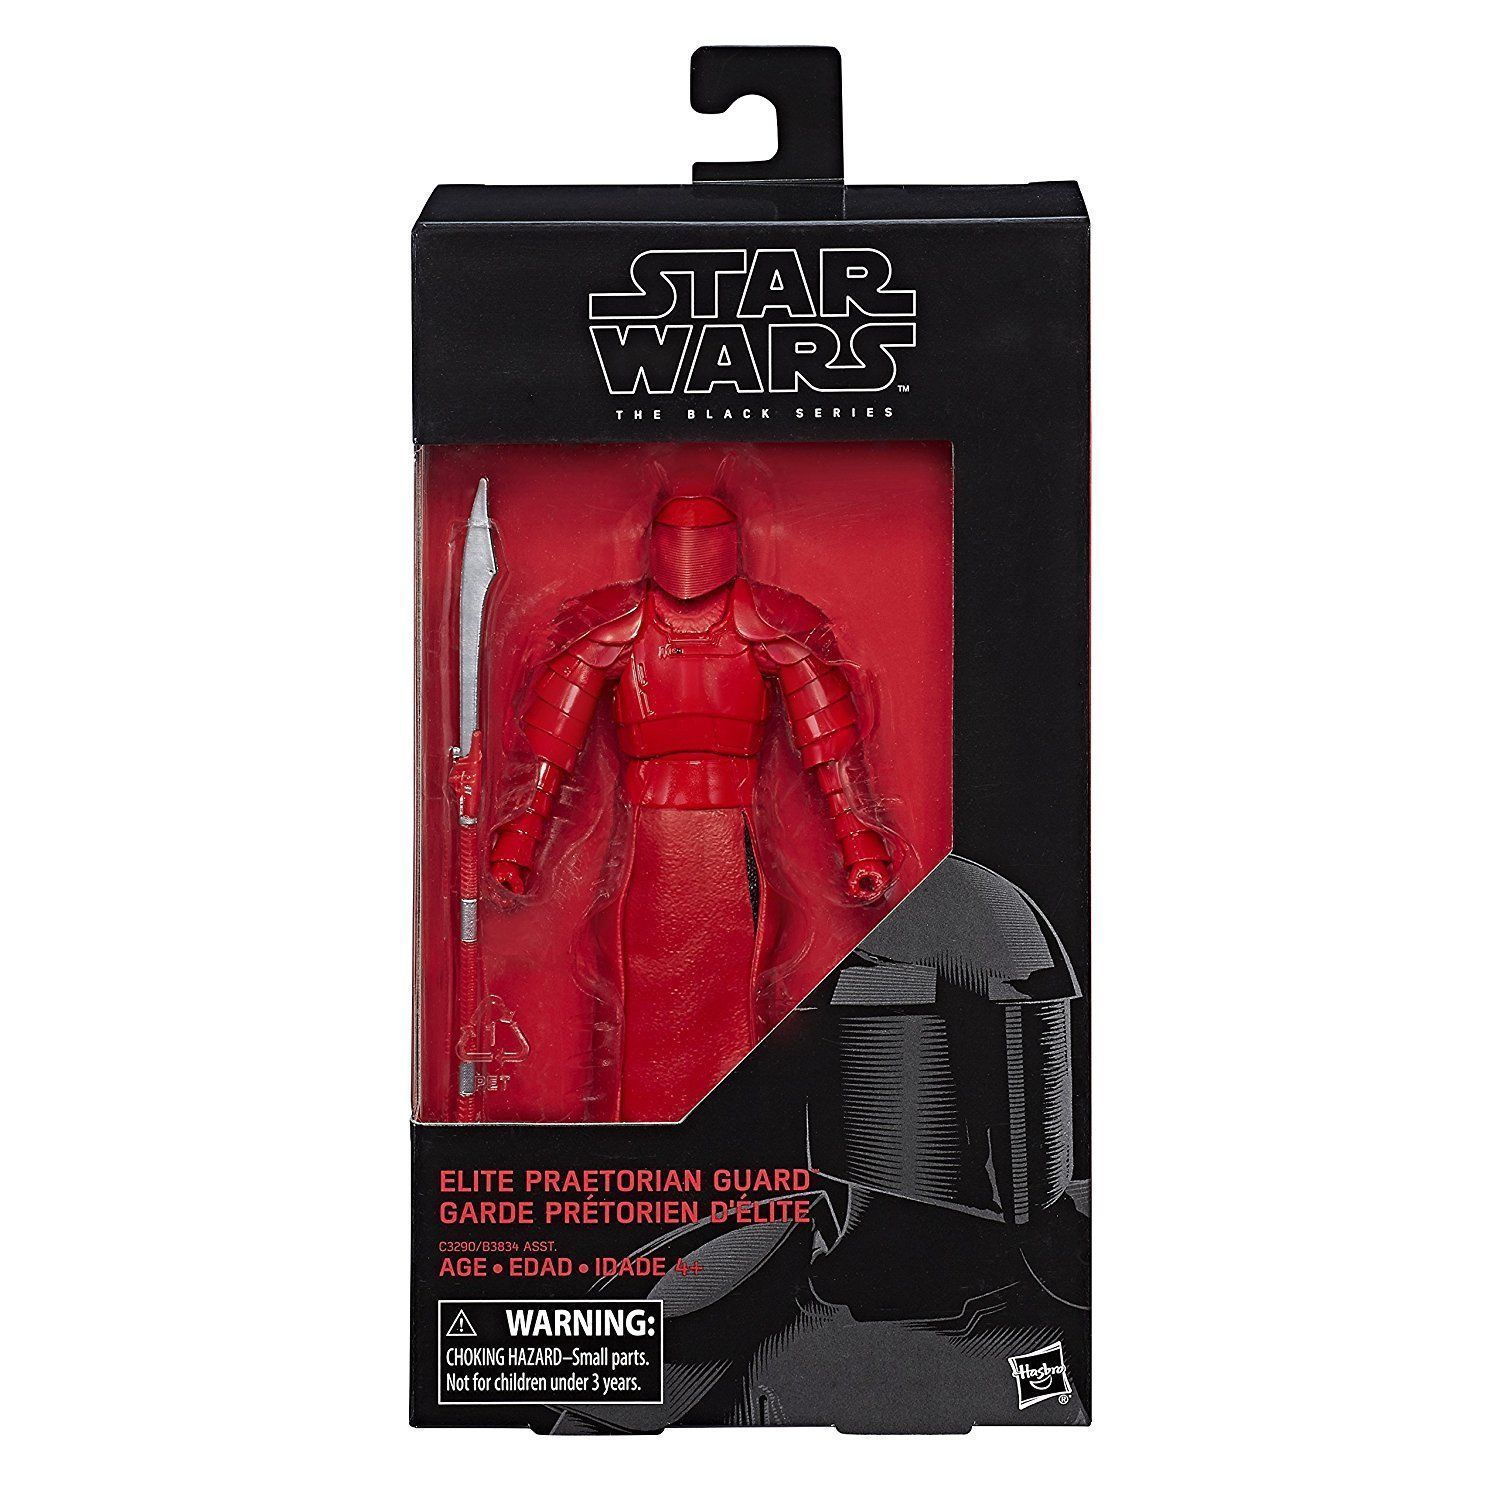 Star Wars: The Black Series - Praetorian Guard image